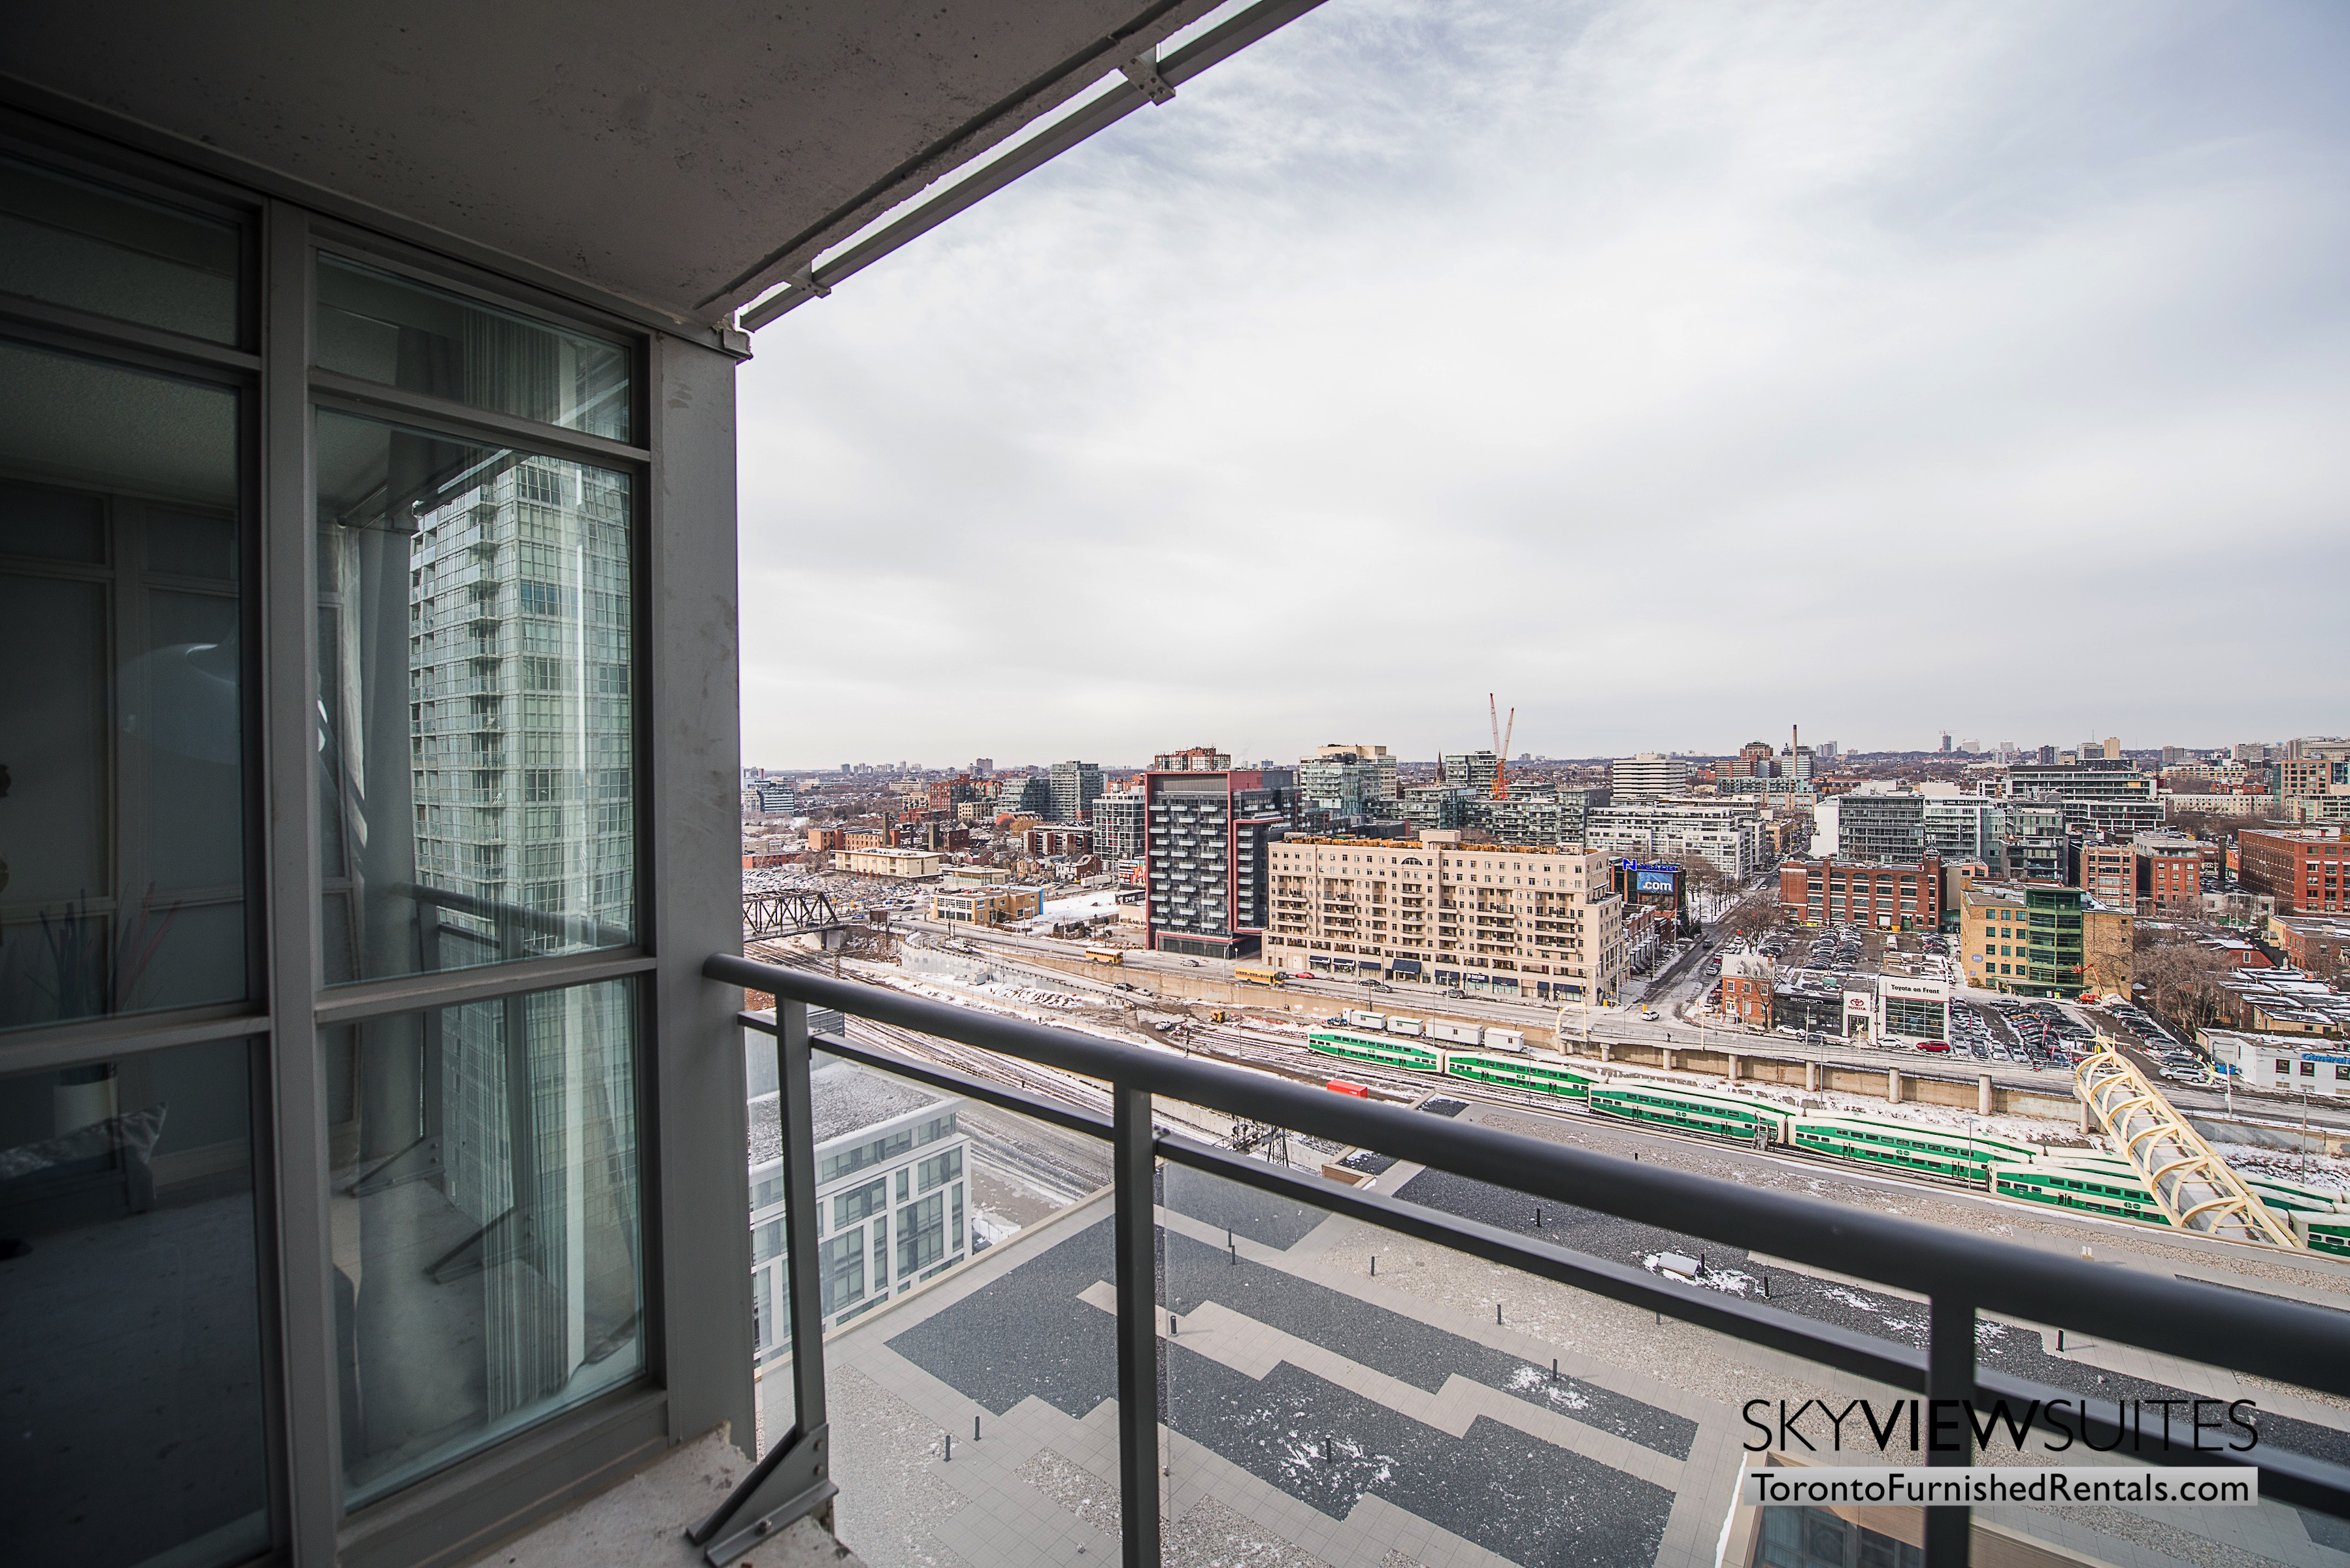 furnished apartments toronto parade view of the city